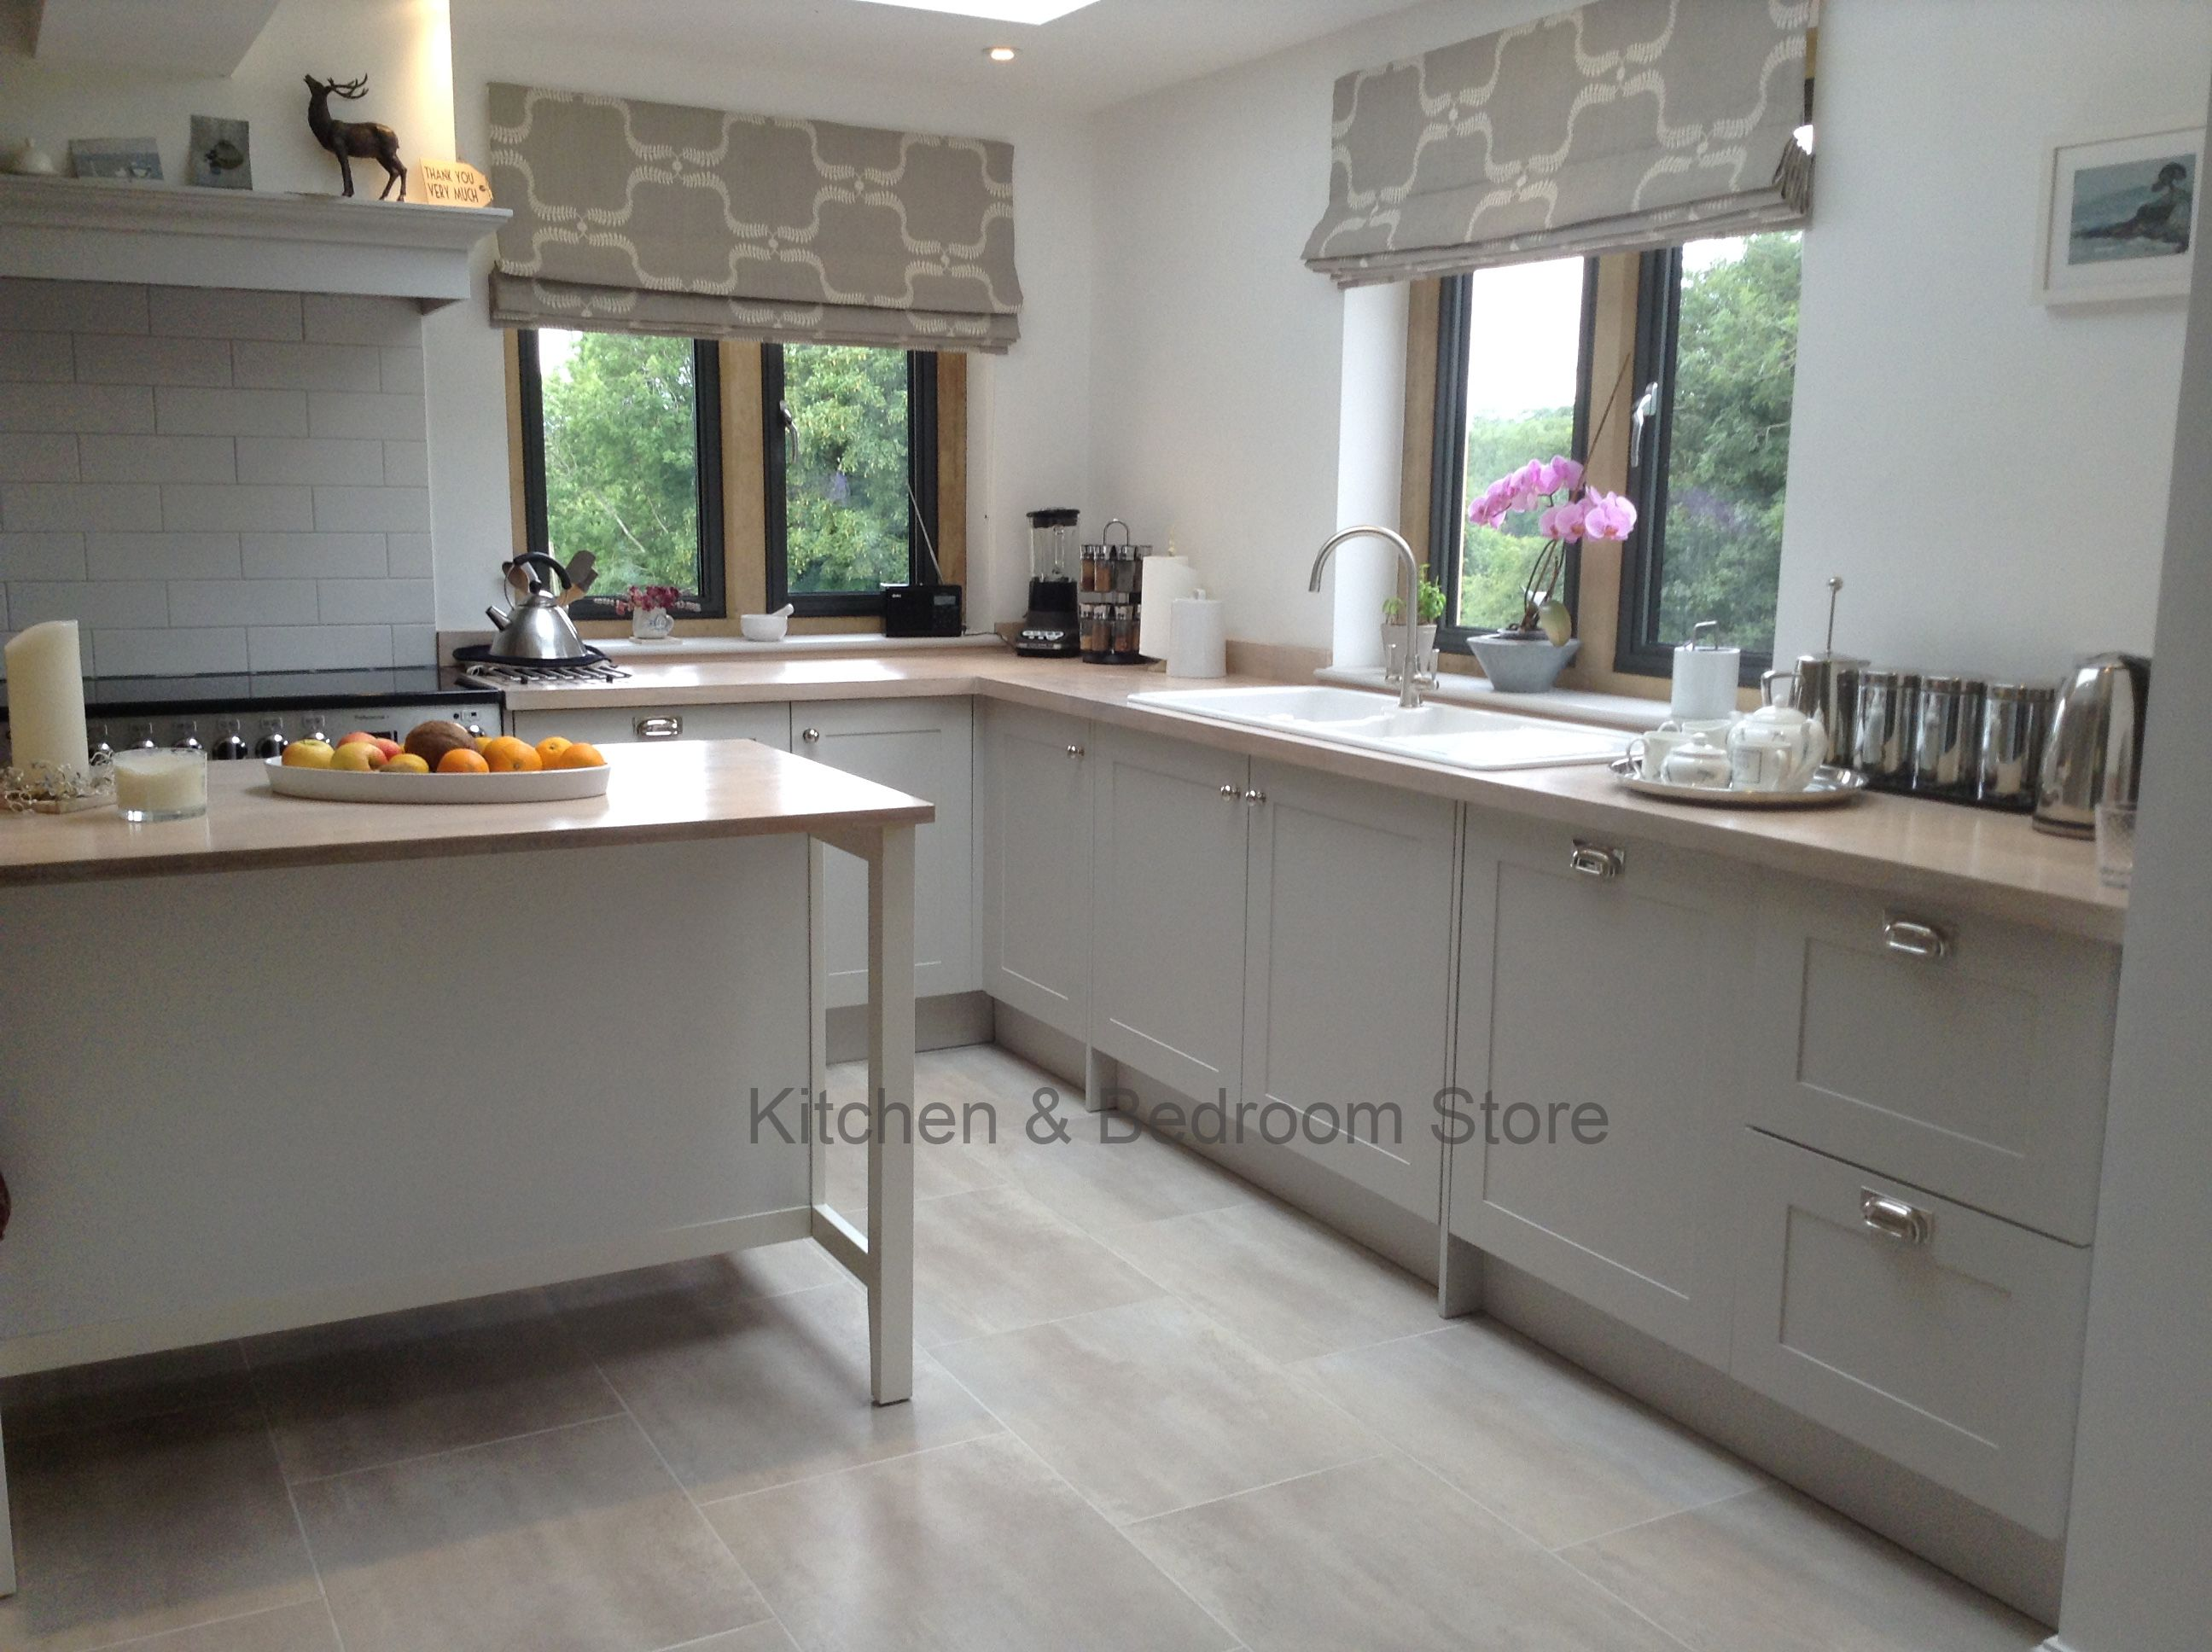 Store Gardinen Modern Painted Shaker Style Kitchen With A Modern Country Feel In Farrow